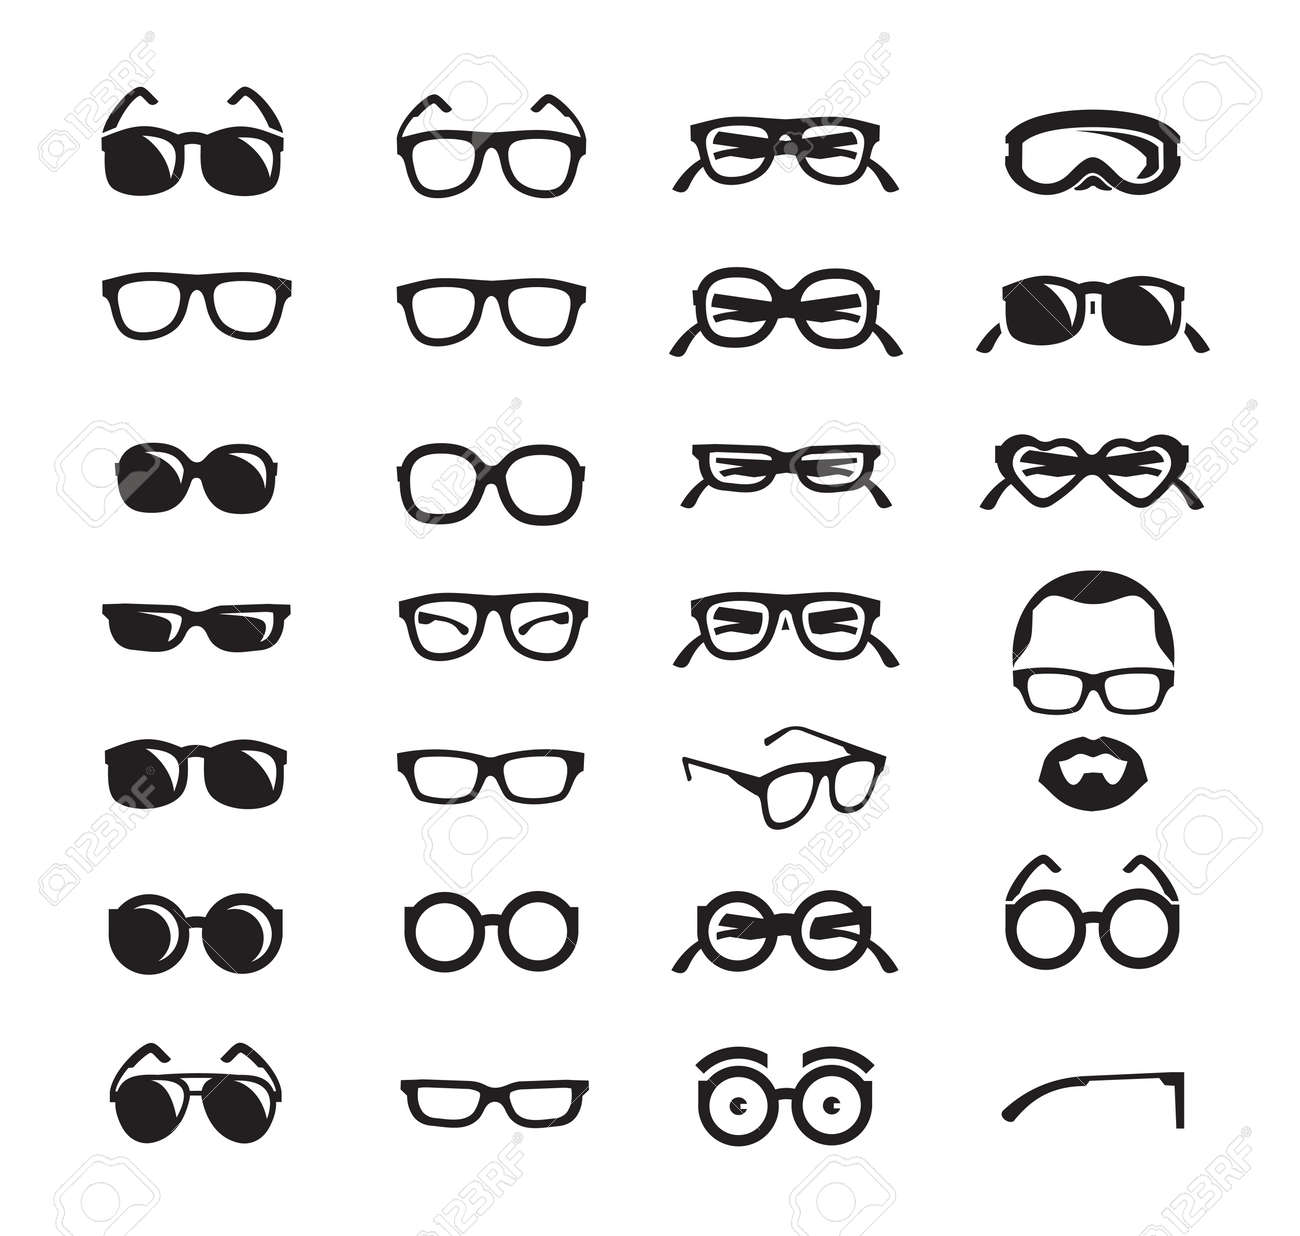 Glasses icons Vector format - 25859083